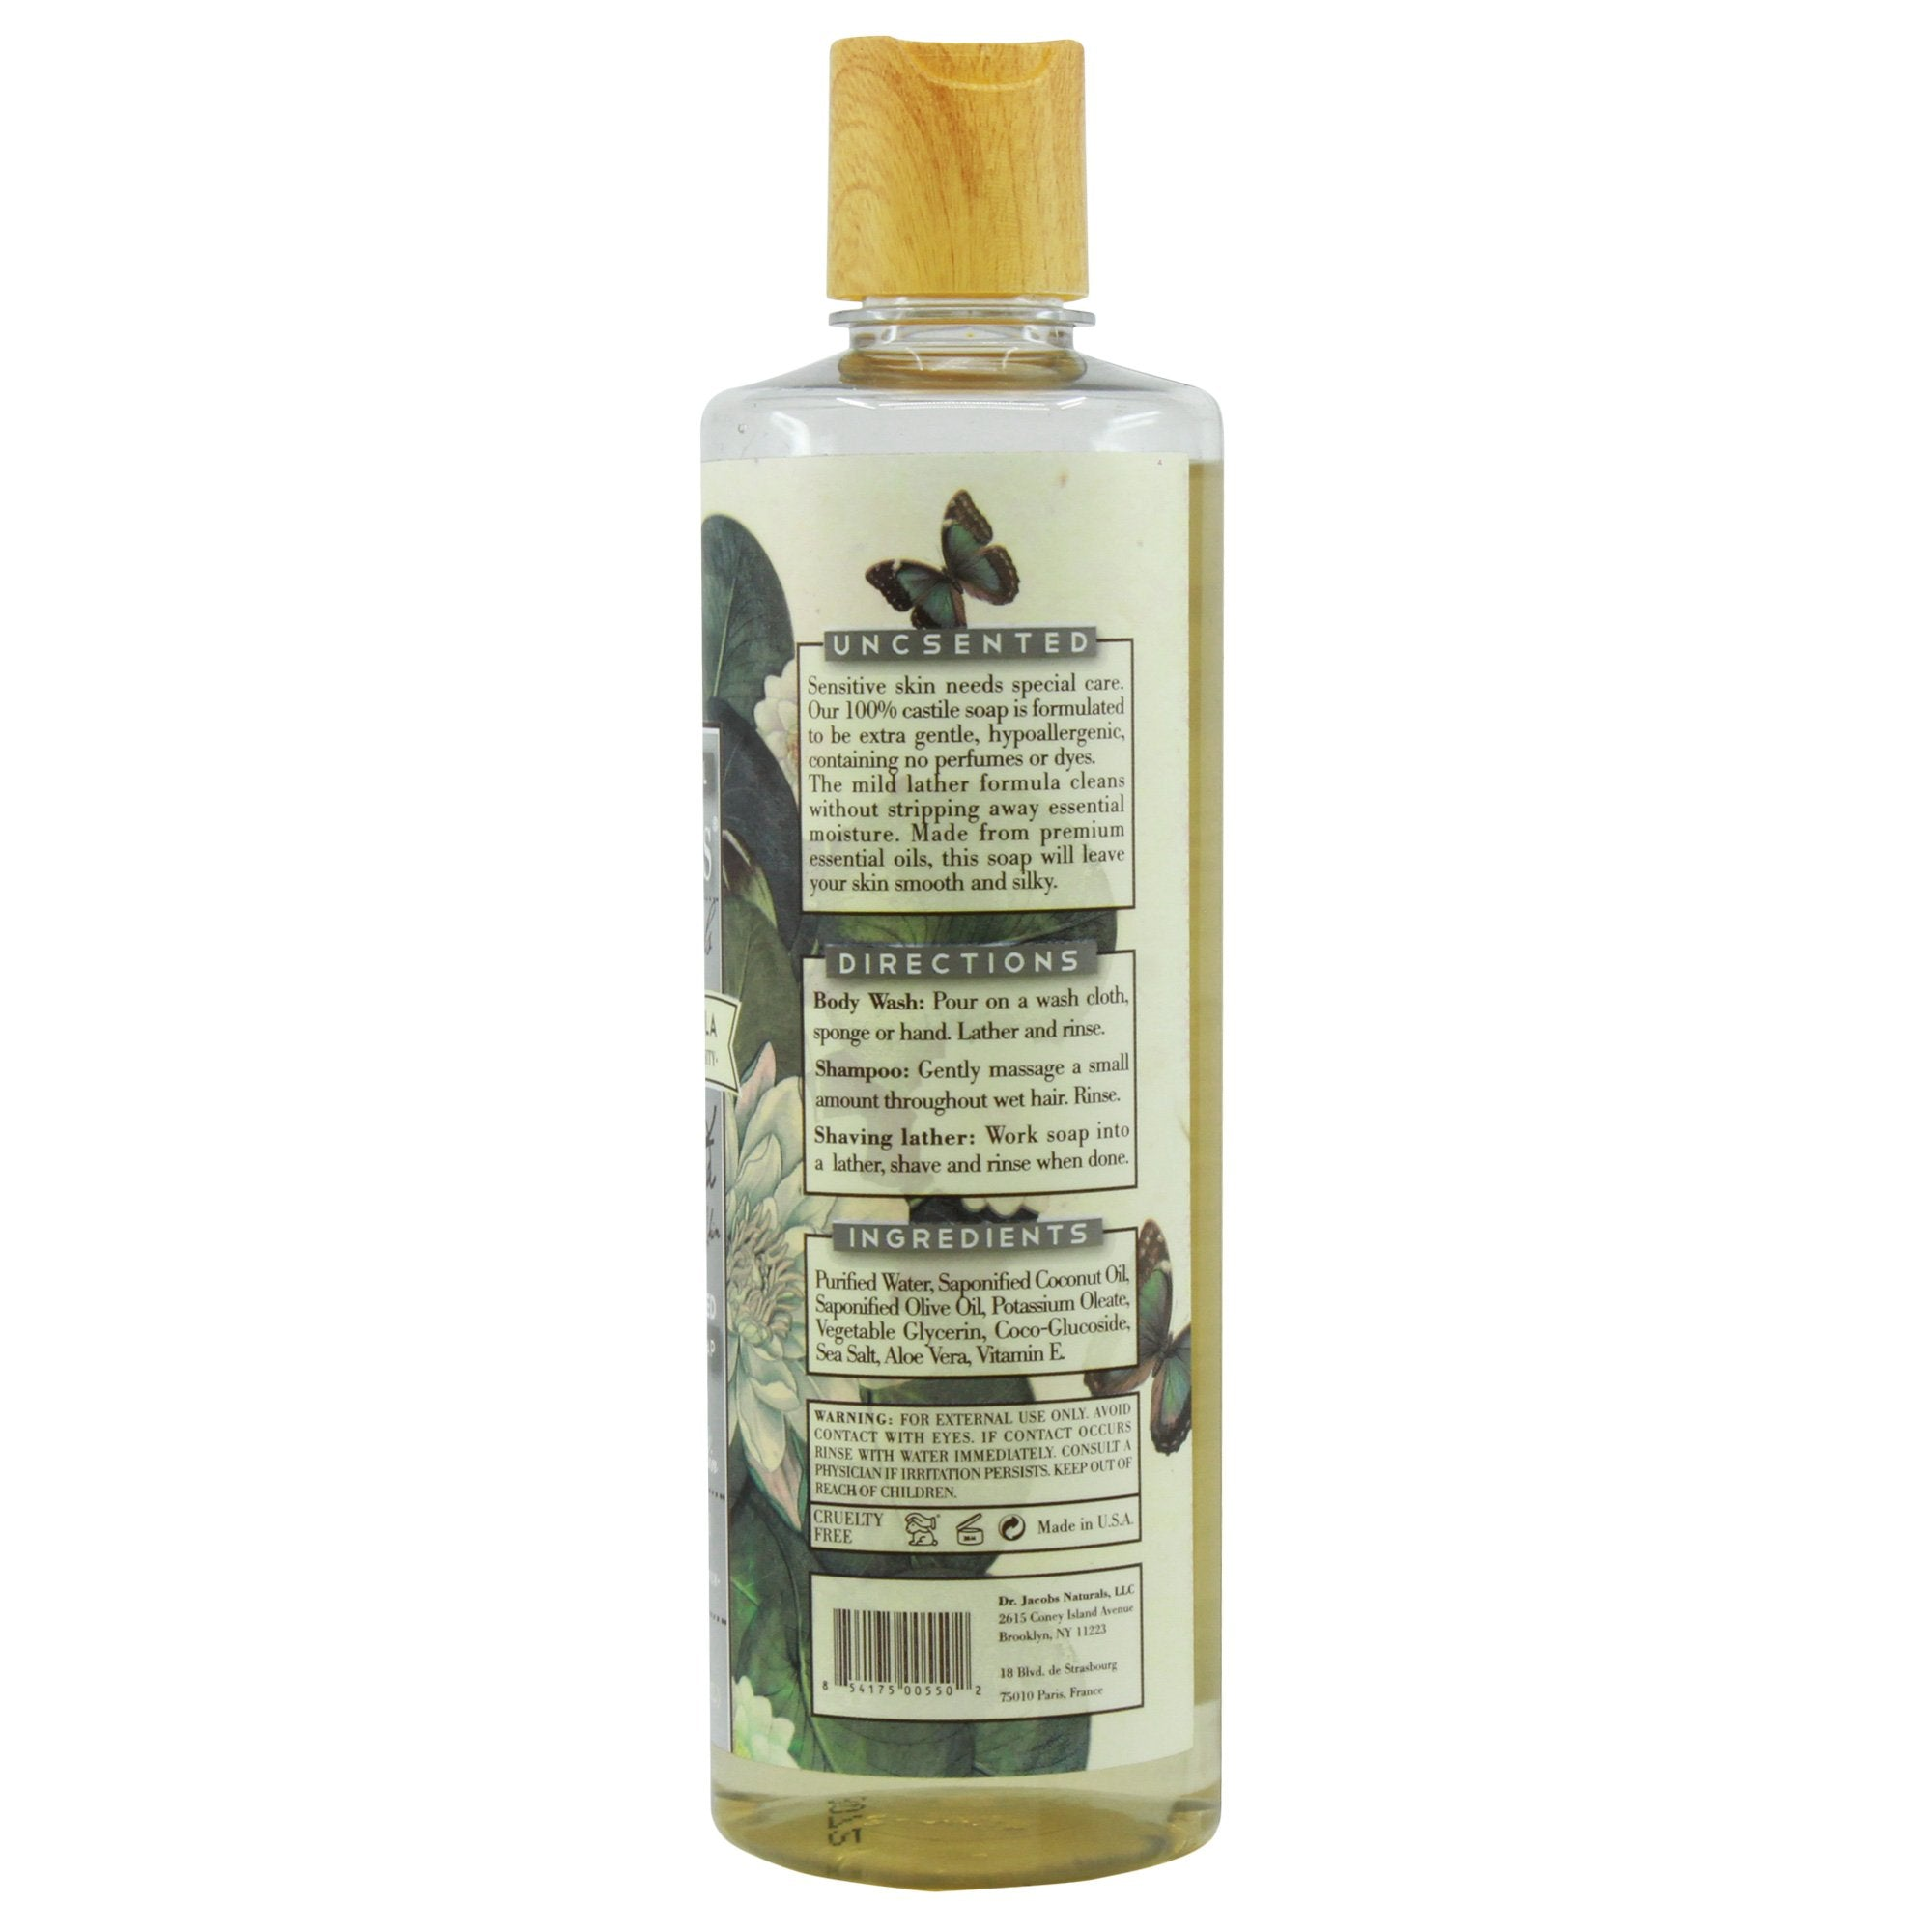 Unscented by Dr. Jacobs Naturals